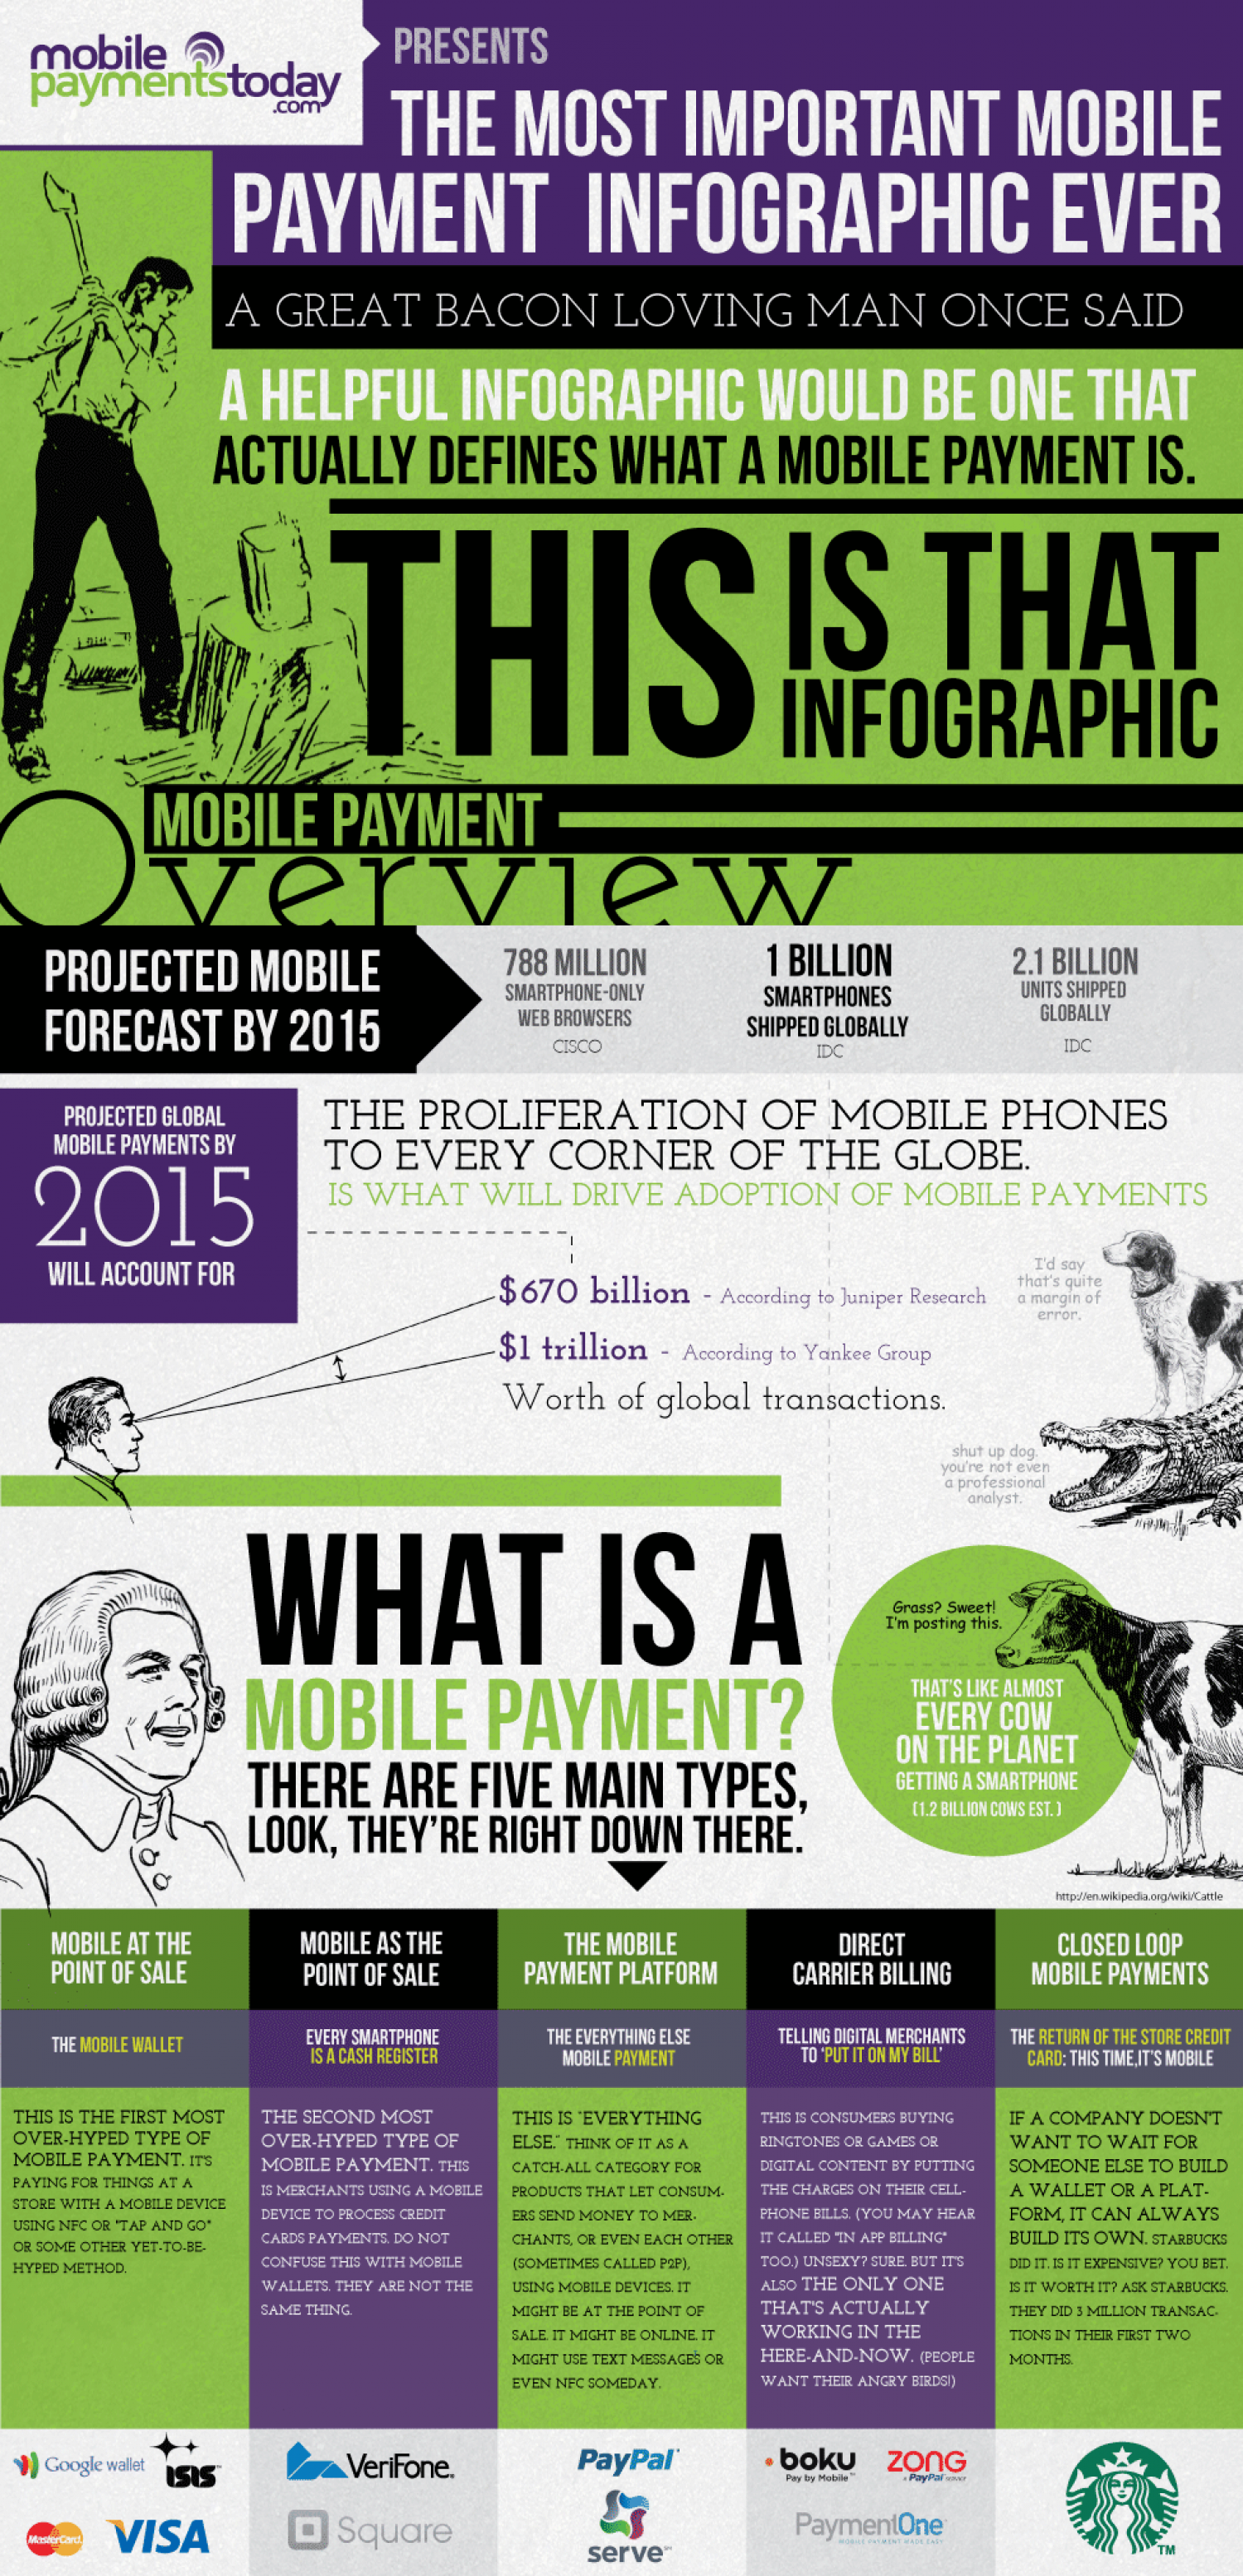 The Most Important Mobile Payment Infographic